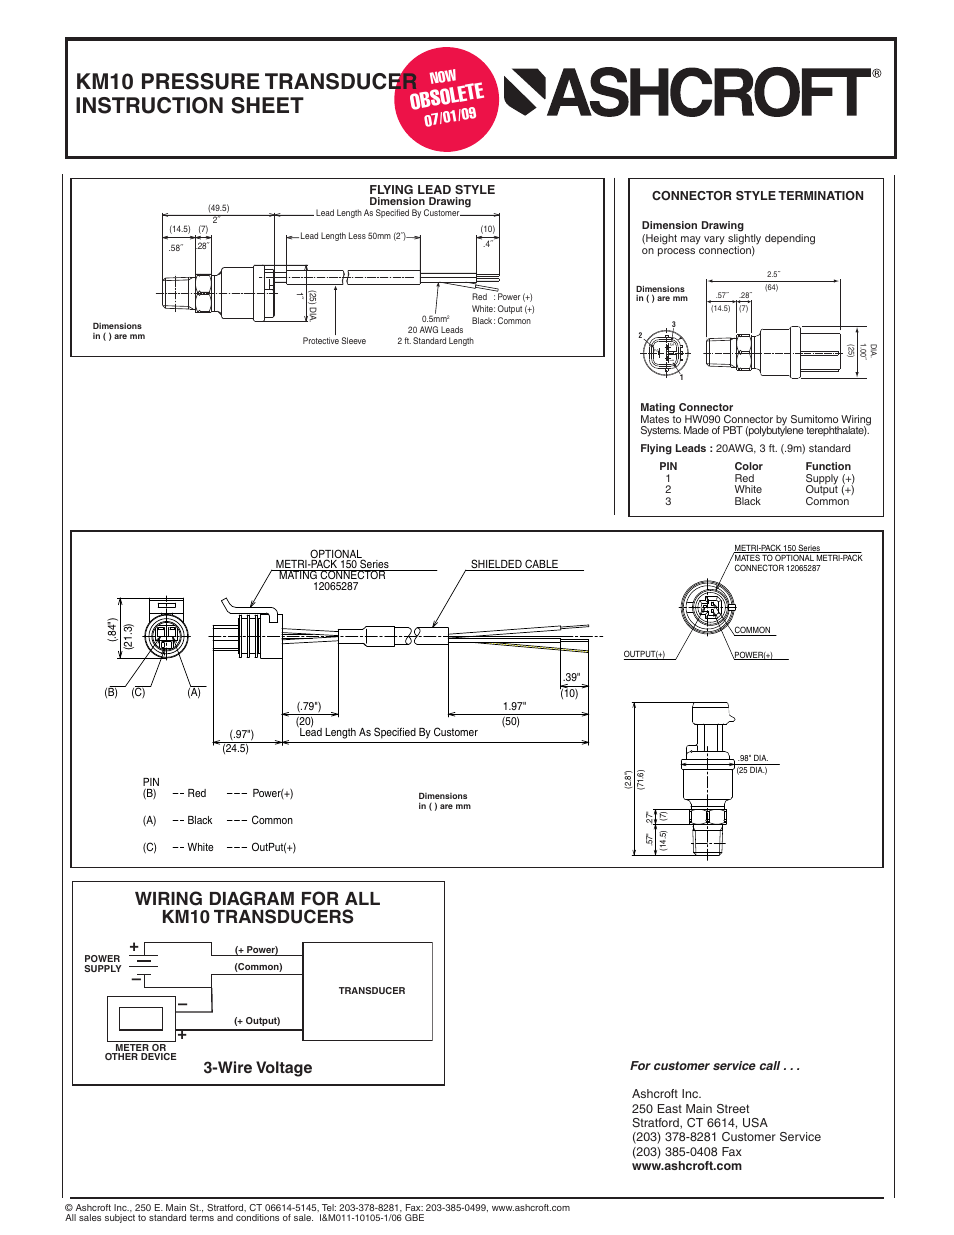 hight resolution of obsole te km10 pressure transducer instruction sheet wiring diagram for all km10 transducers ashcroft km10 compact pressure transducer user manual